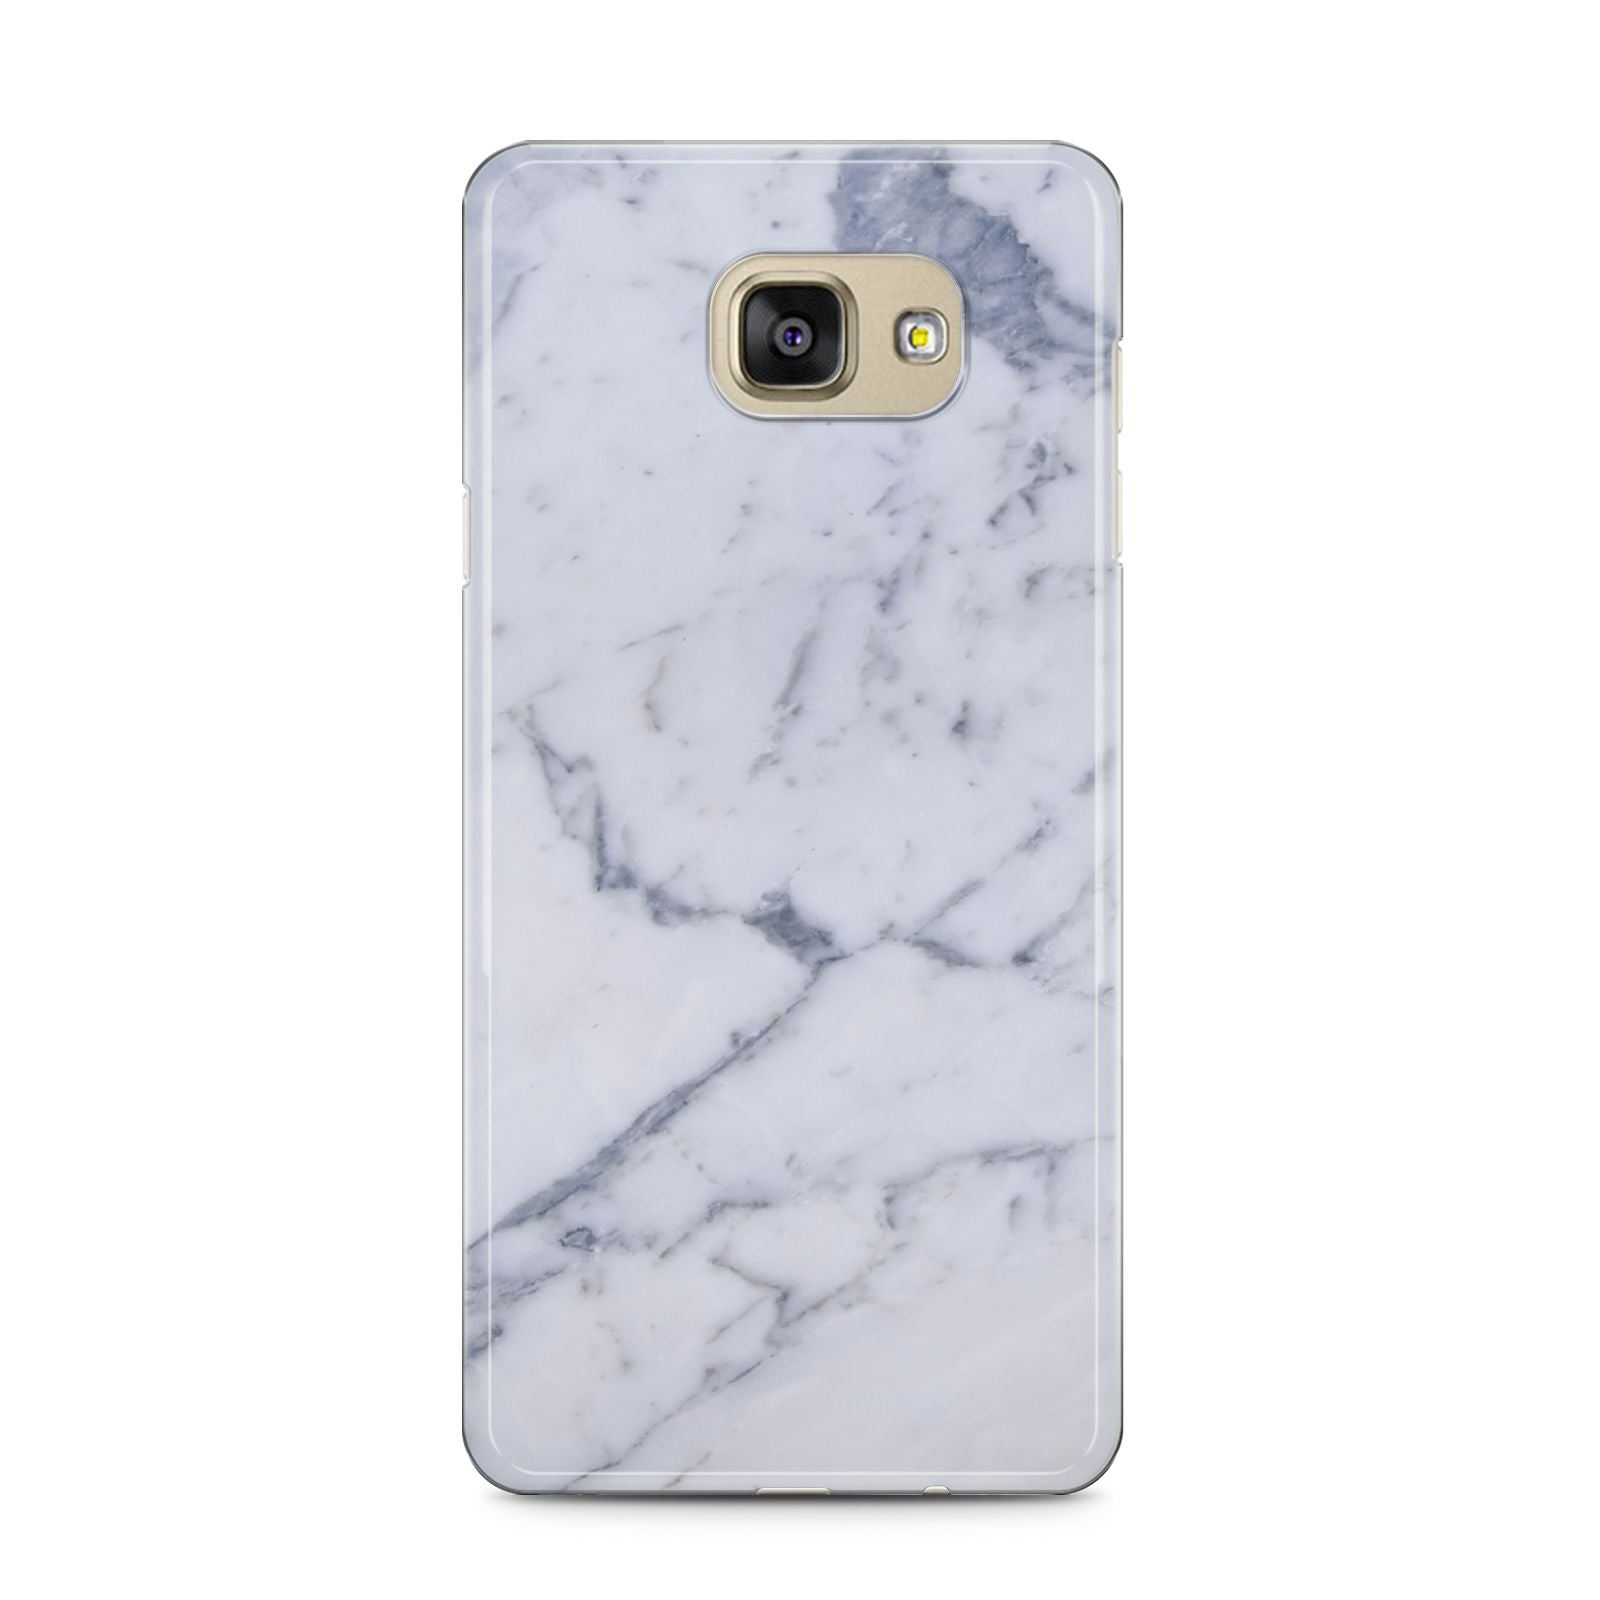 Faux Marble Grey White Samsung Galaxy A5 2016 Case on gold phone